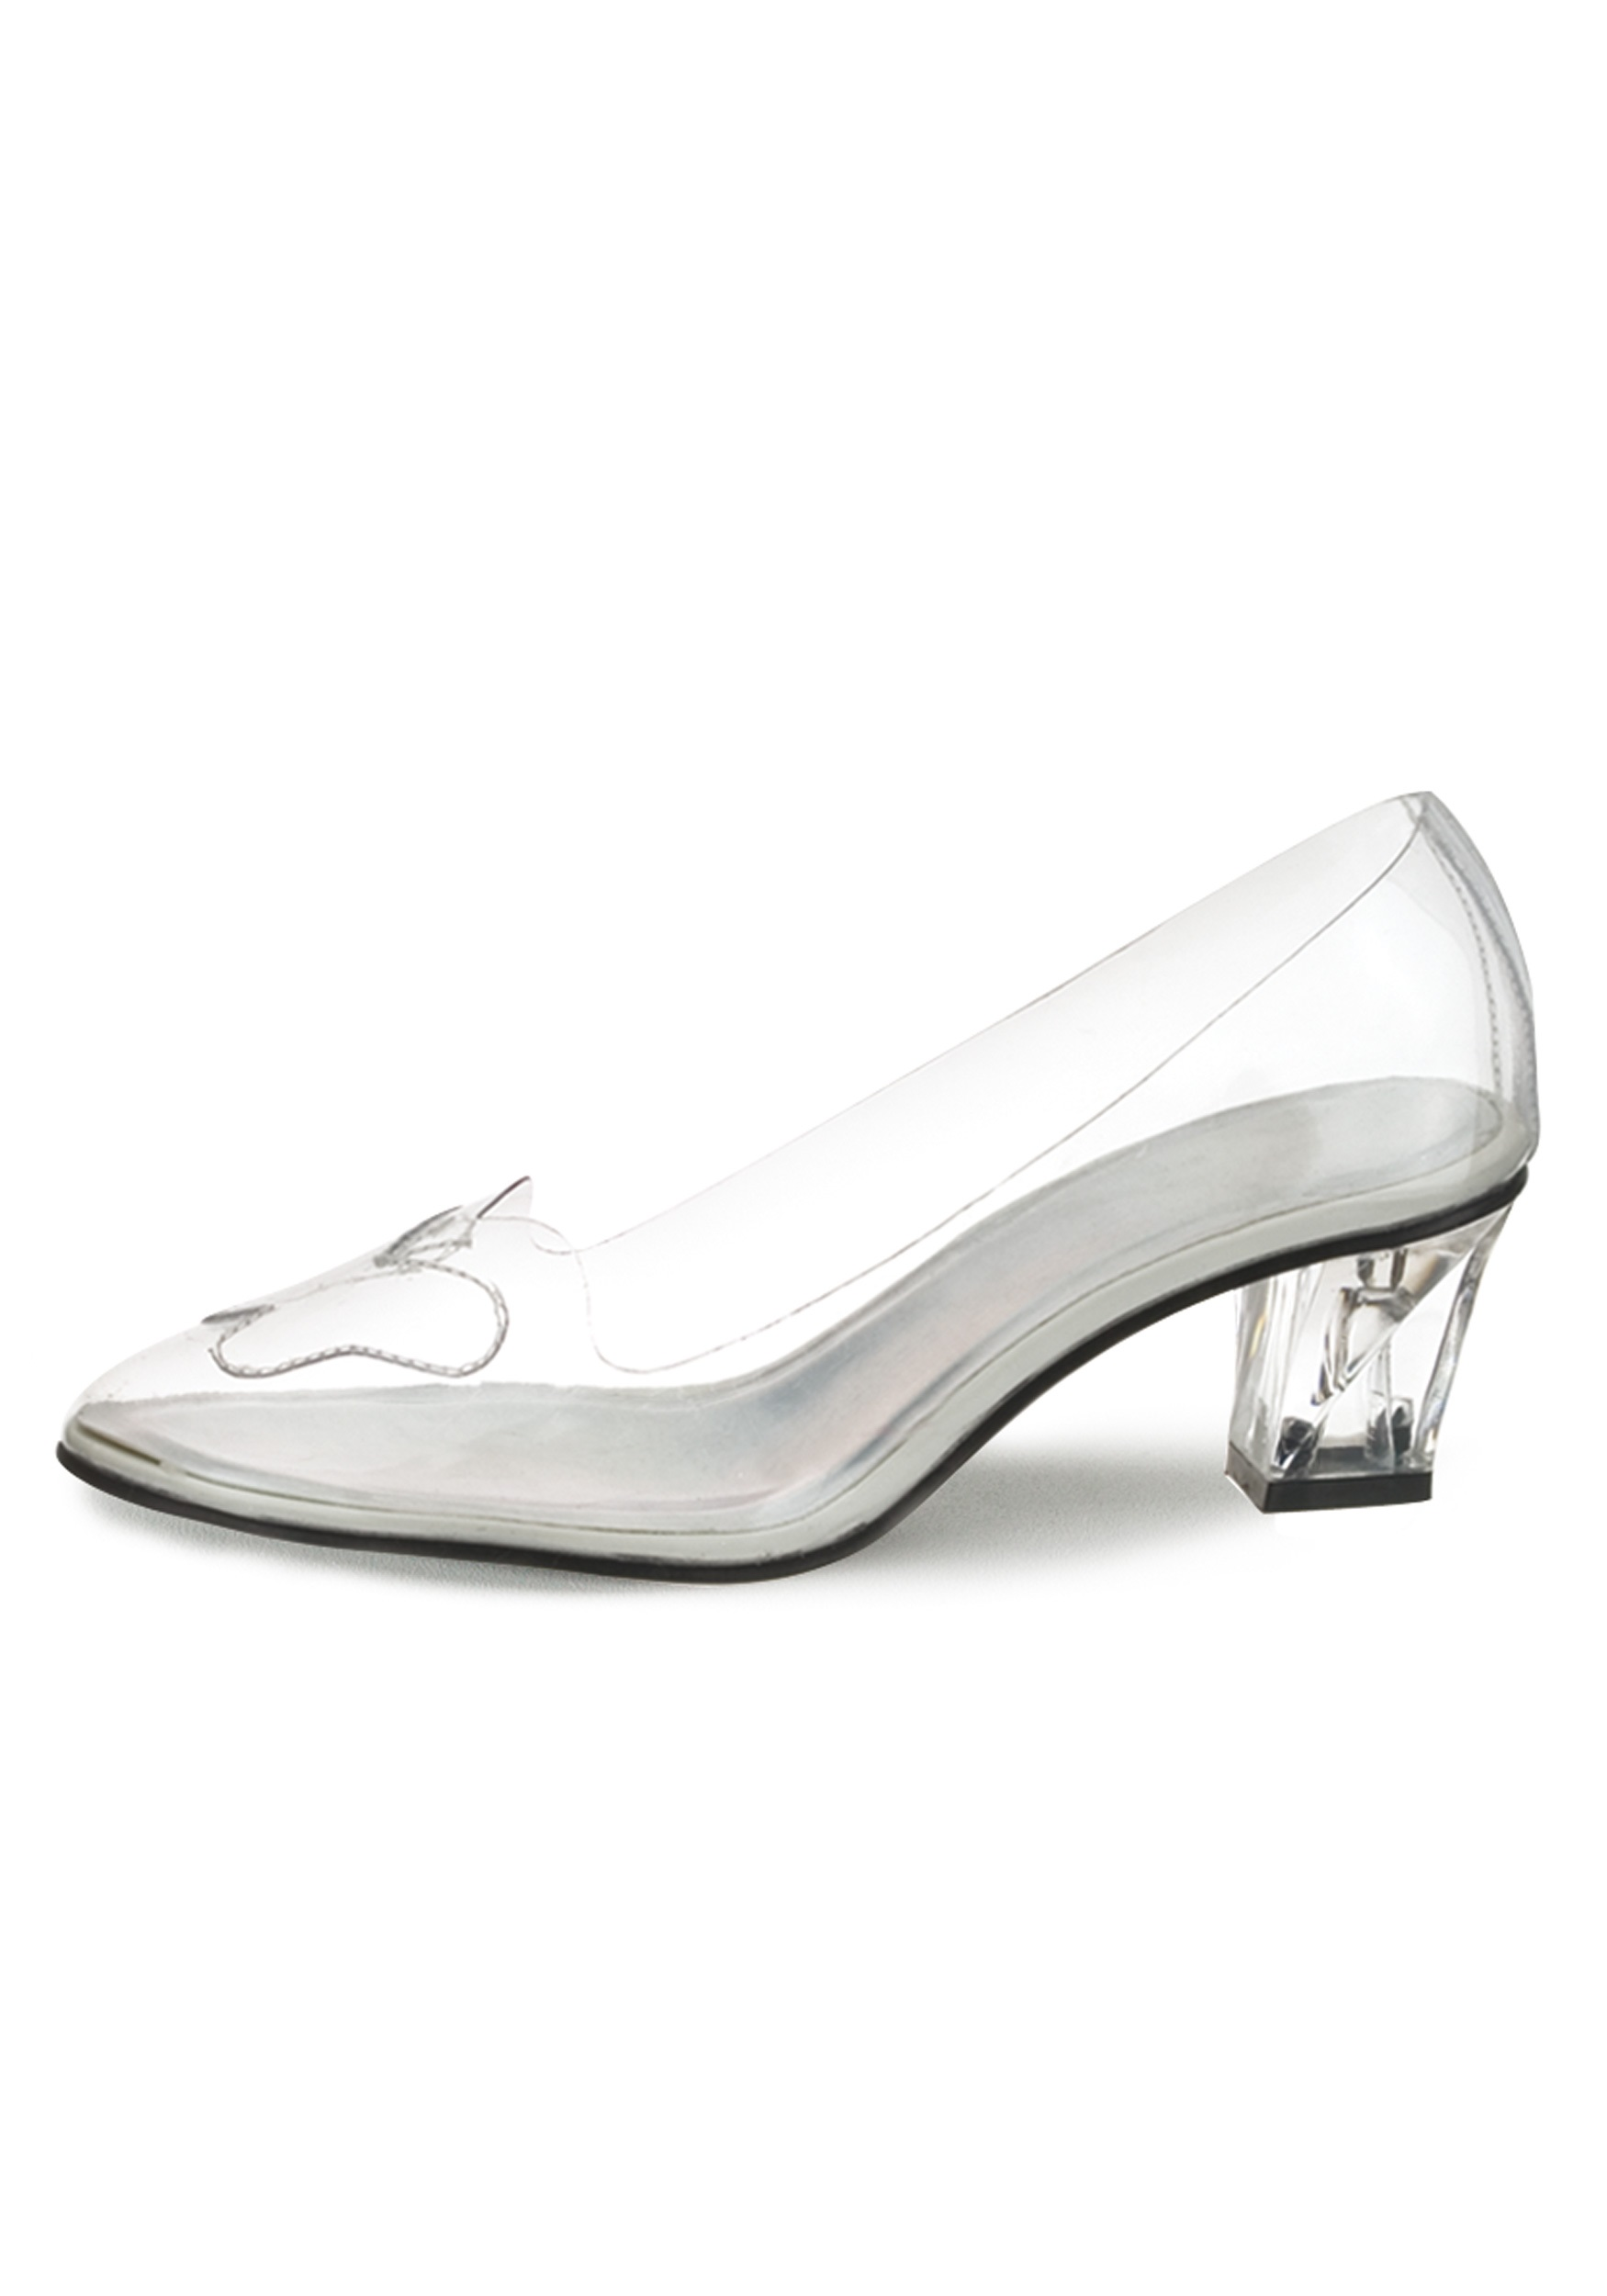 Cinderella S Glass Shoe Clear Shoes